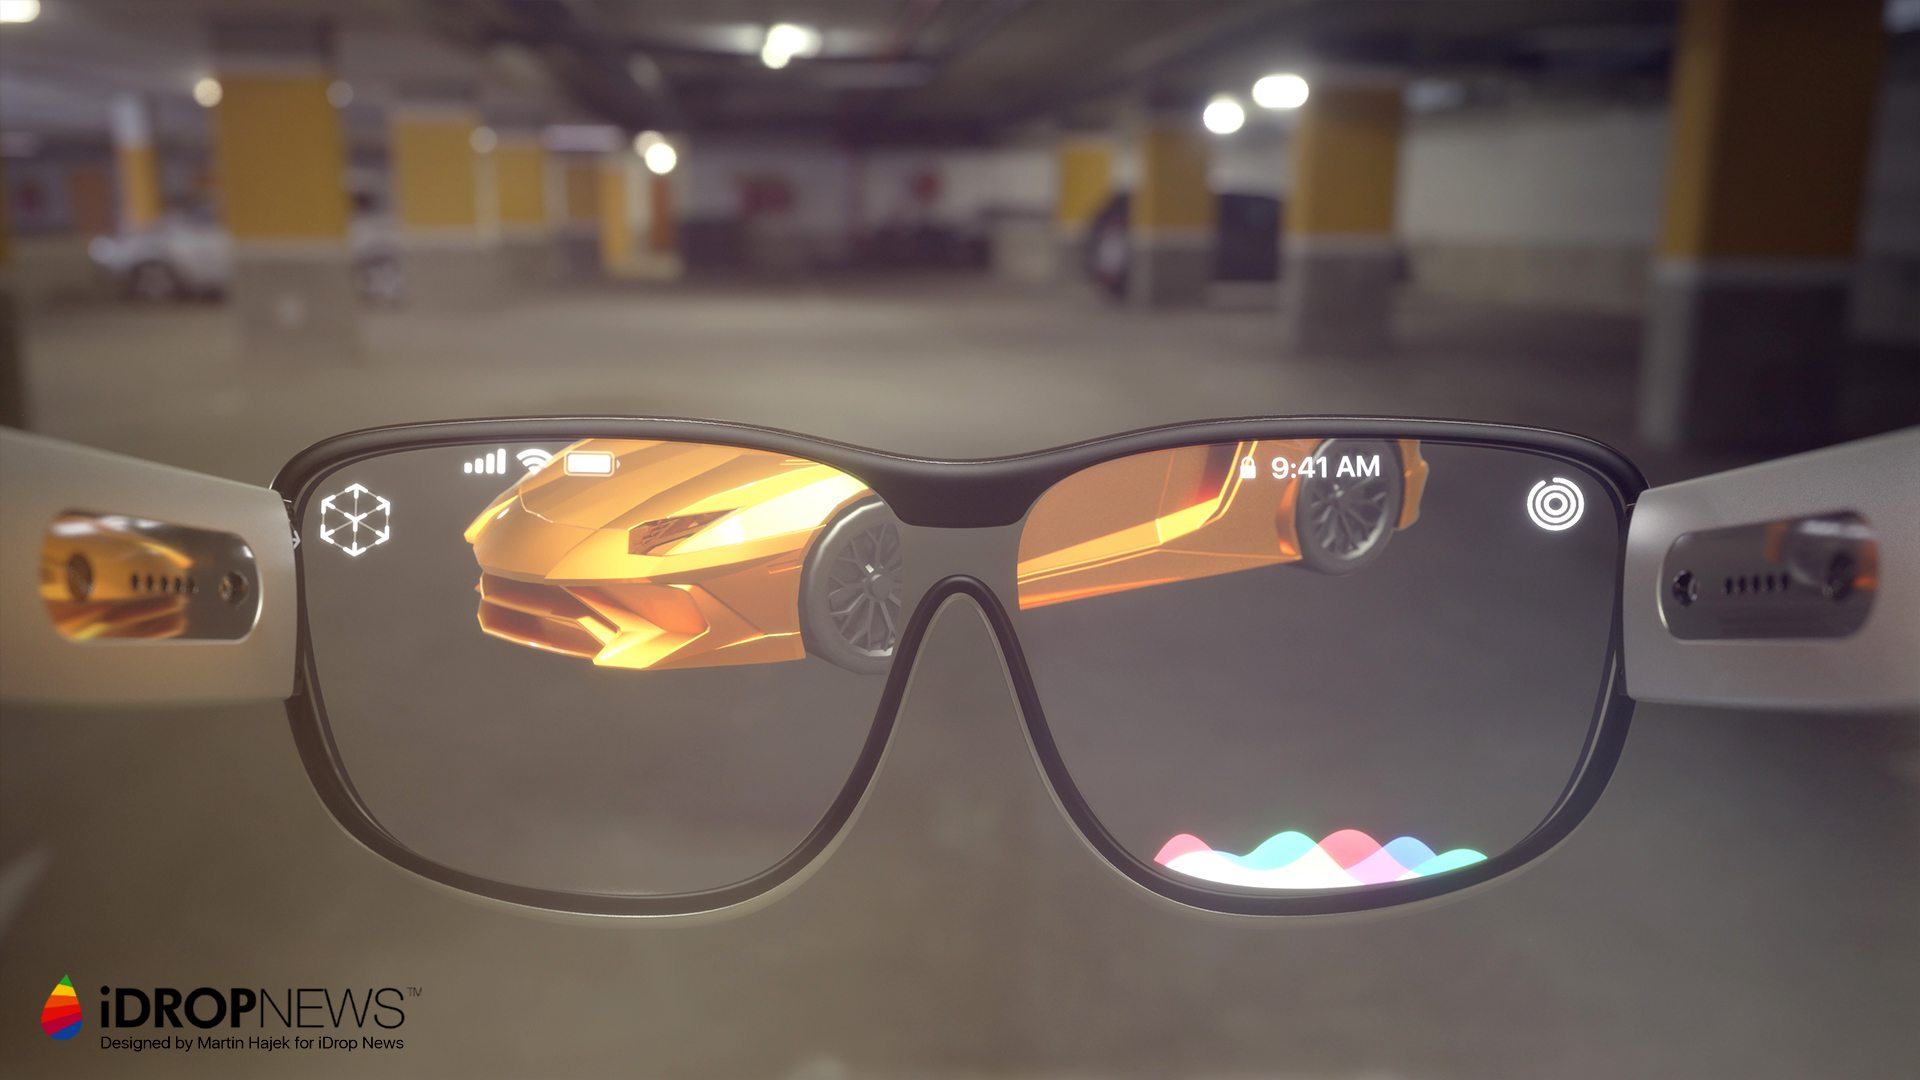 Apple's Semitransparent Lenses for AR Headset Moving to Trial Production